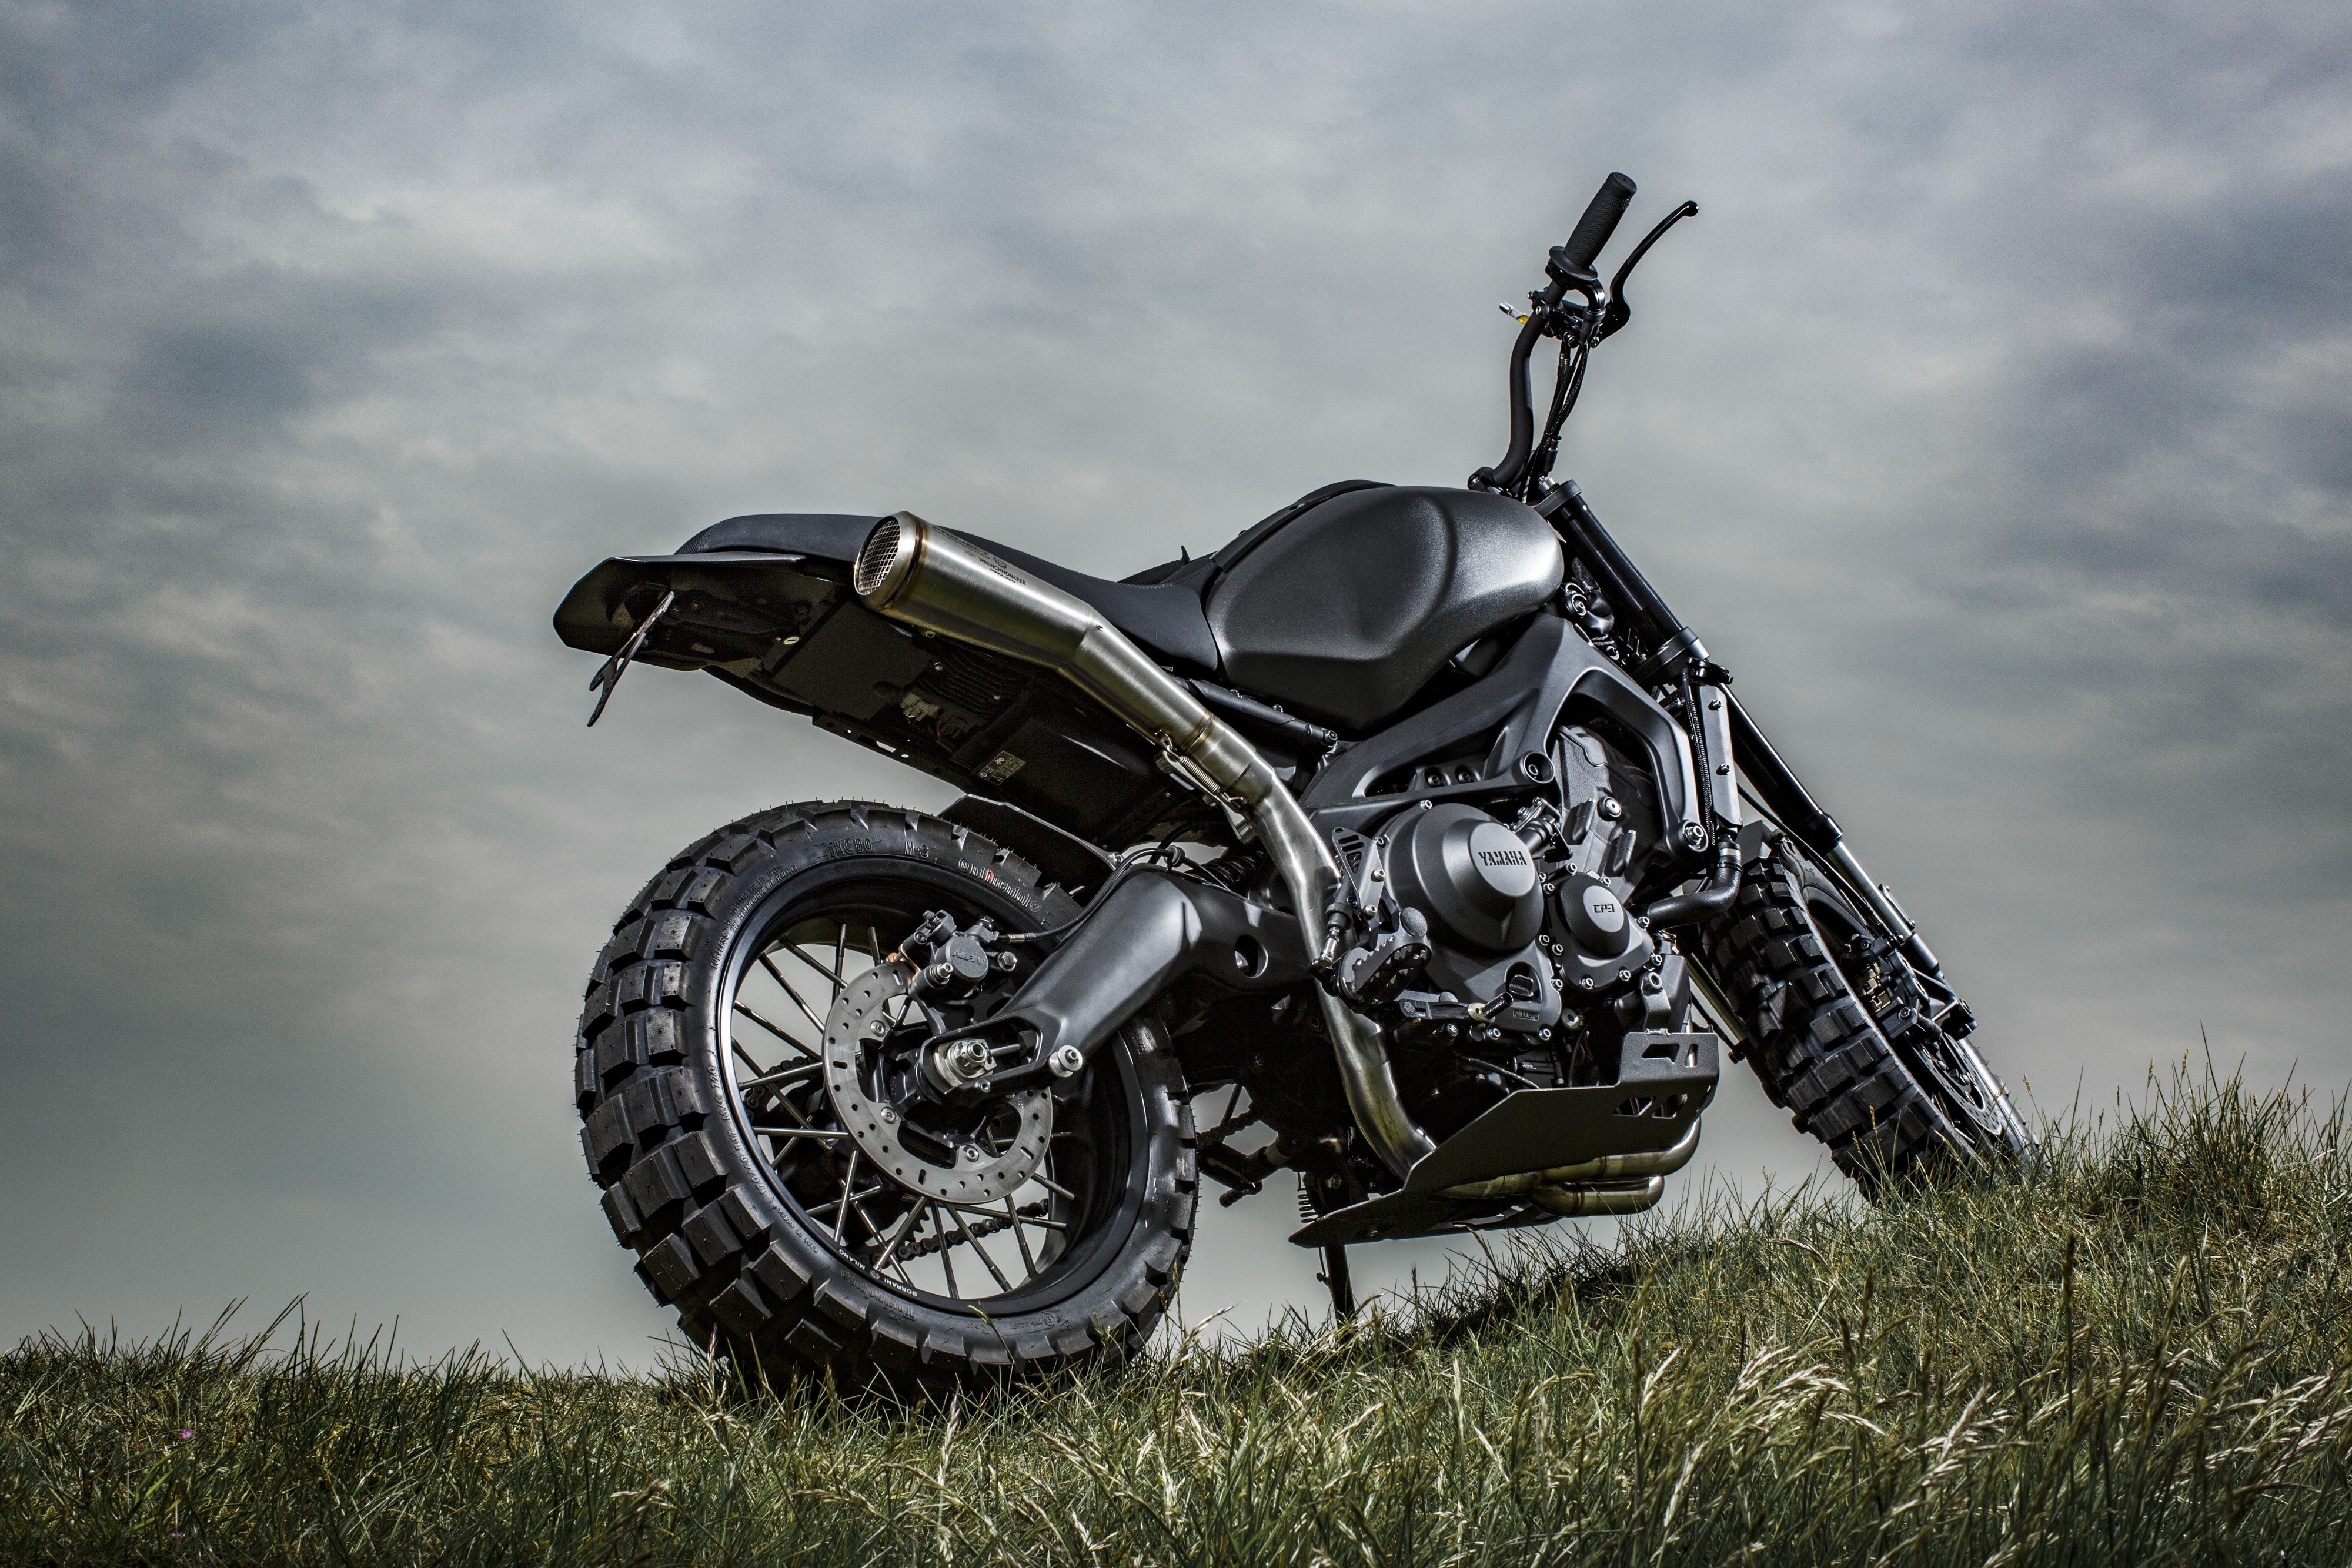 Yard Built Yamaha Xsr900 Monkeebeast By Wrenchmonkees 19